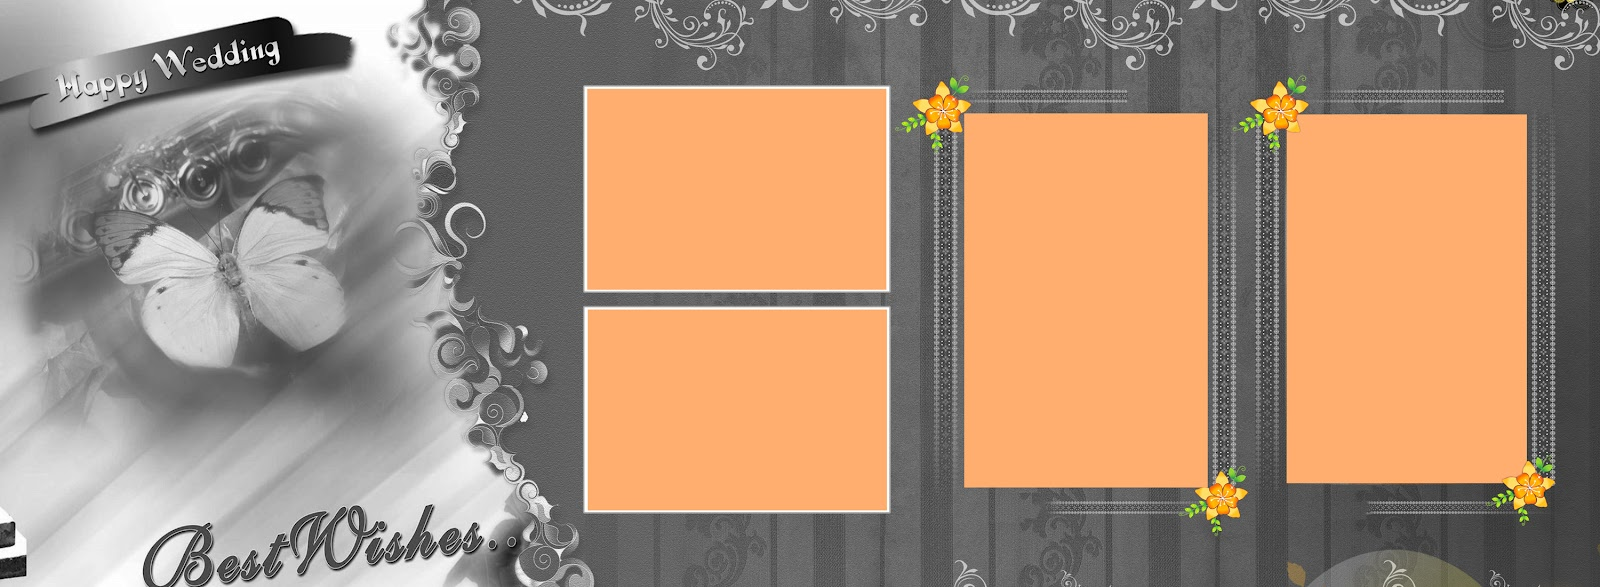 Free Backdrop Templates   Free Photoshop Backgrounds High Resolution Wallpapers Templates